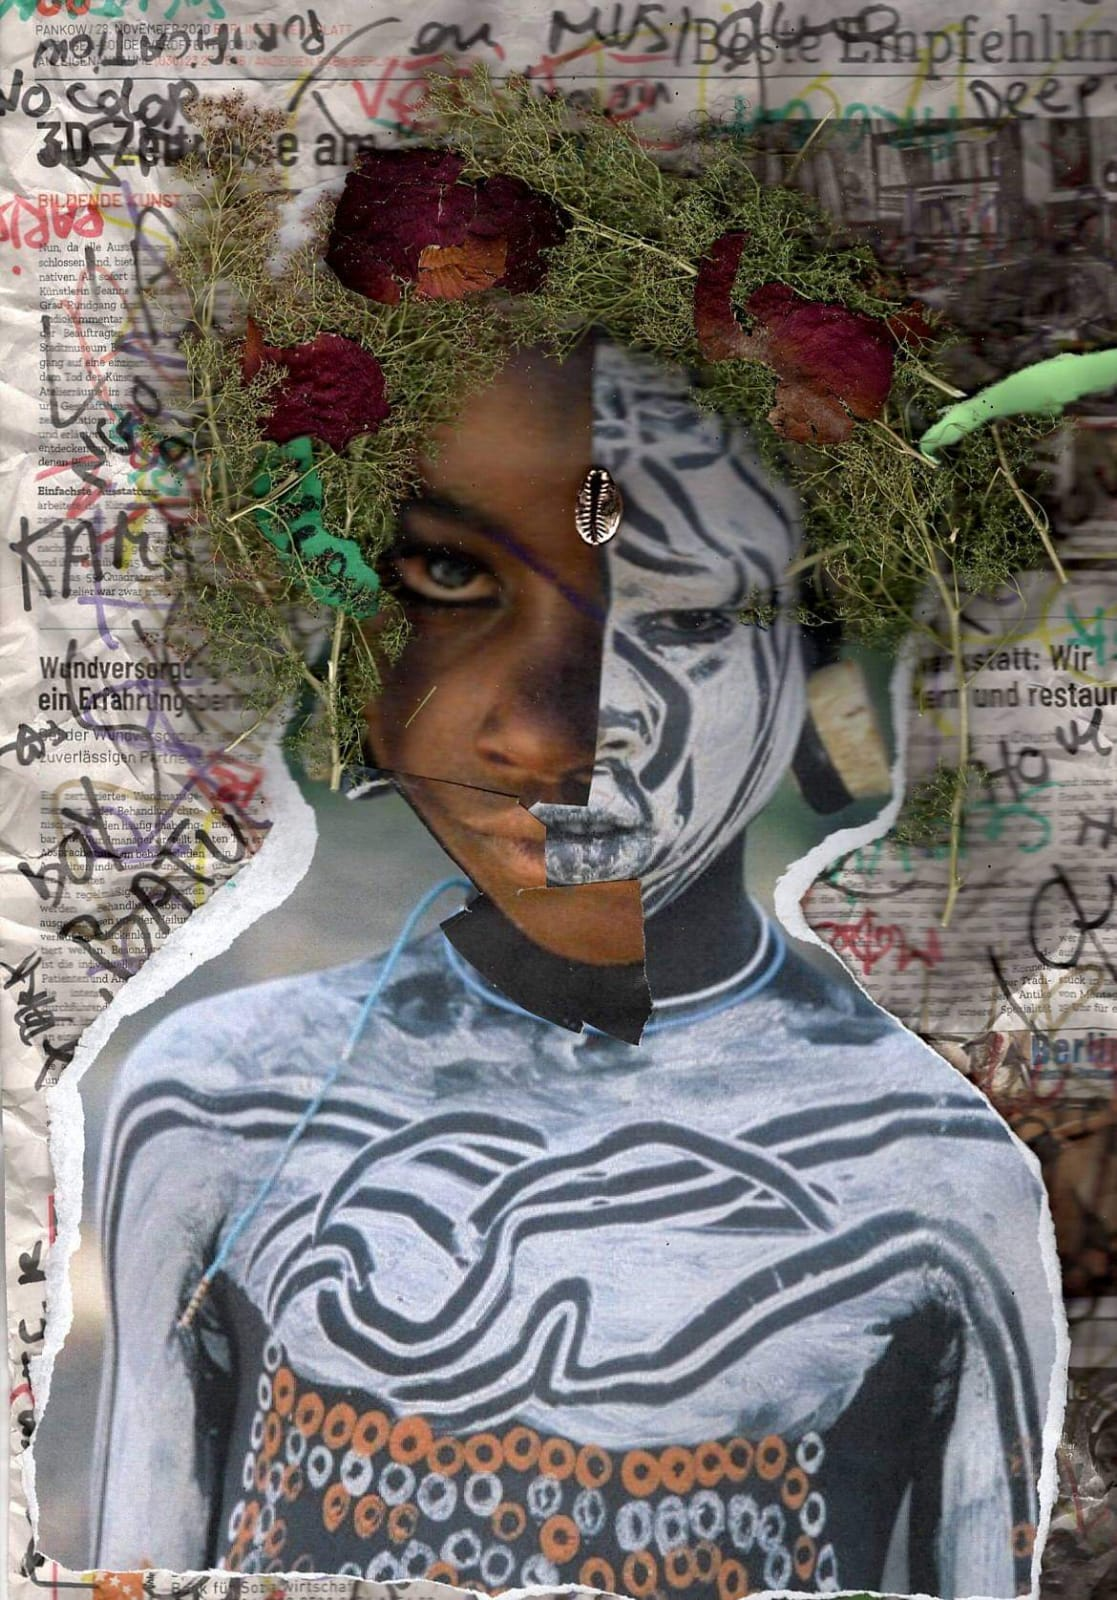 Exocé Kasongo, Last Punk, print on demand, 2021